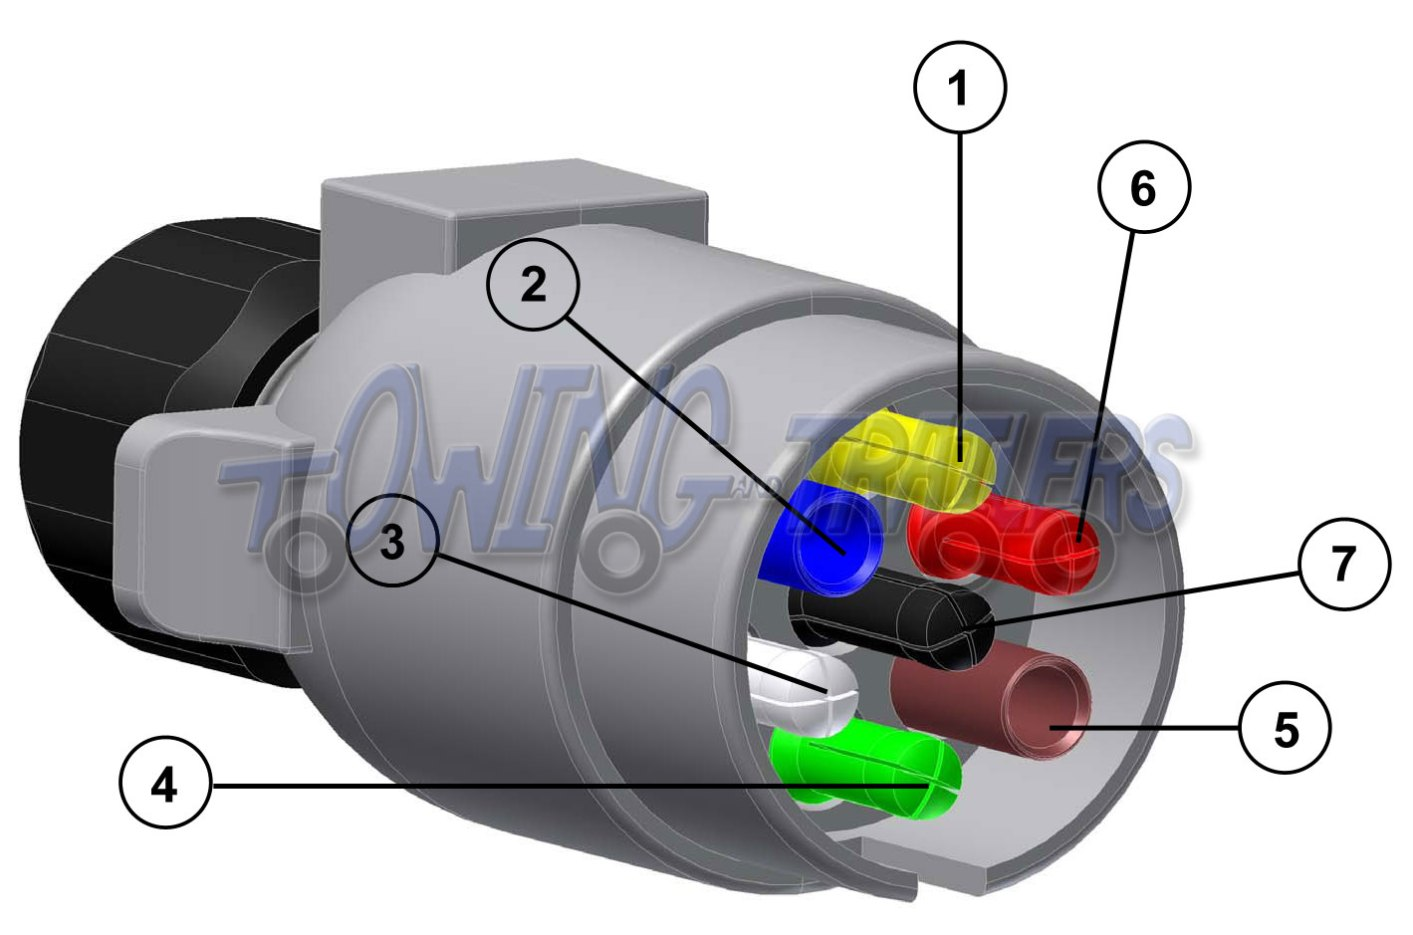 pin trailer socket wiring diagram image wiring 7 pin trailer socket wiring diagram wiring diagrams on 7 pin trailer socket wiring diagram